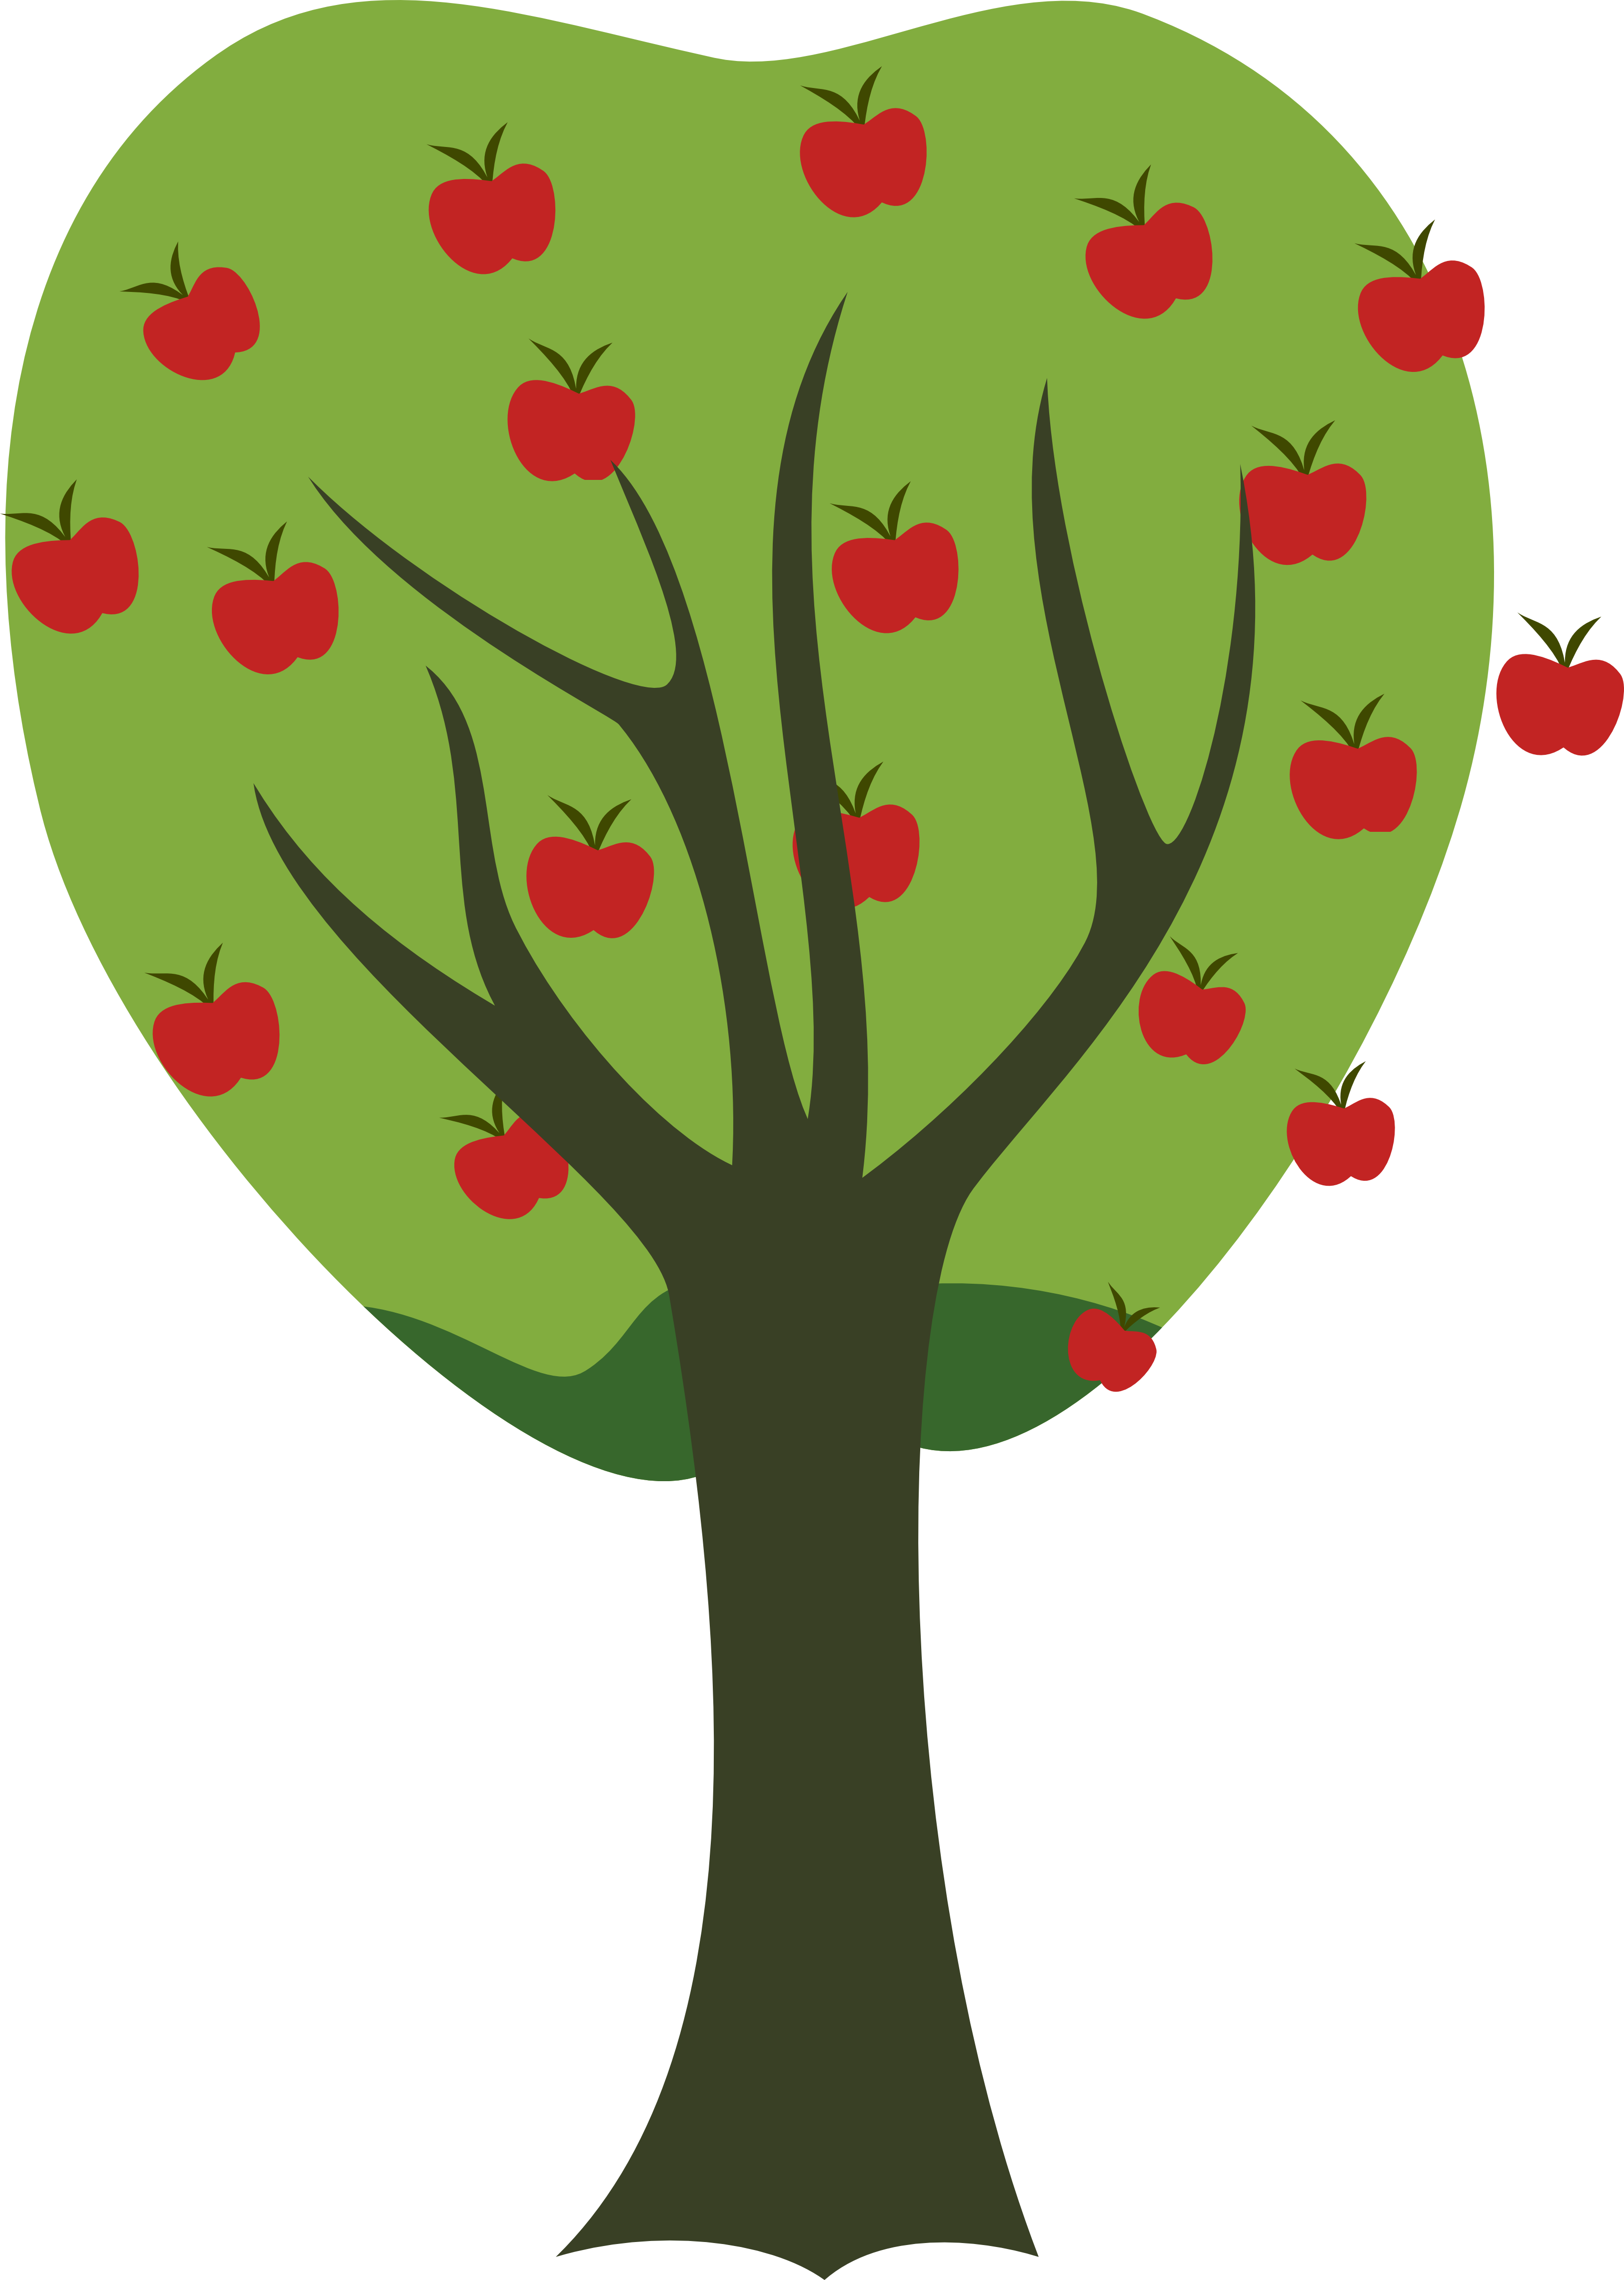 Roots clipart apple tree. Picture of a clip